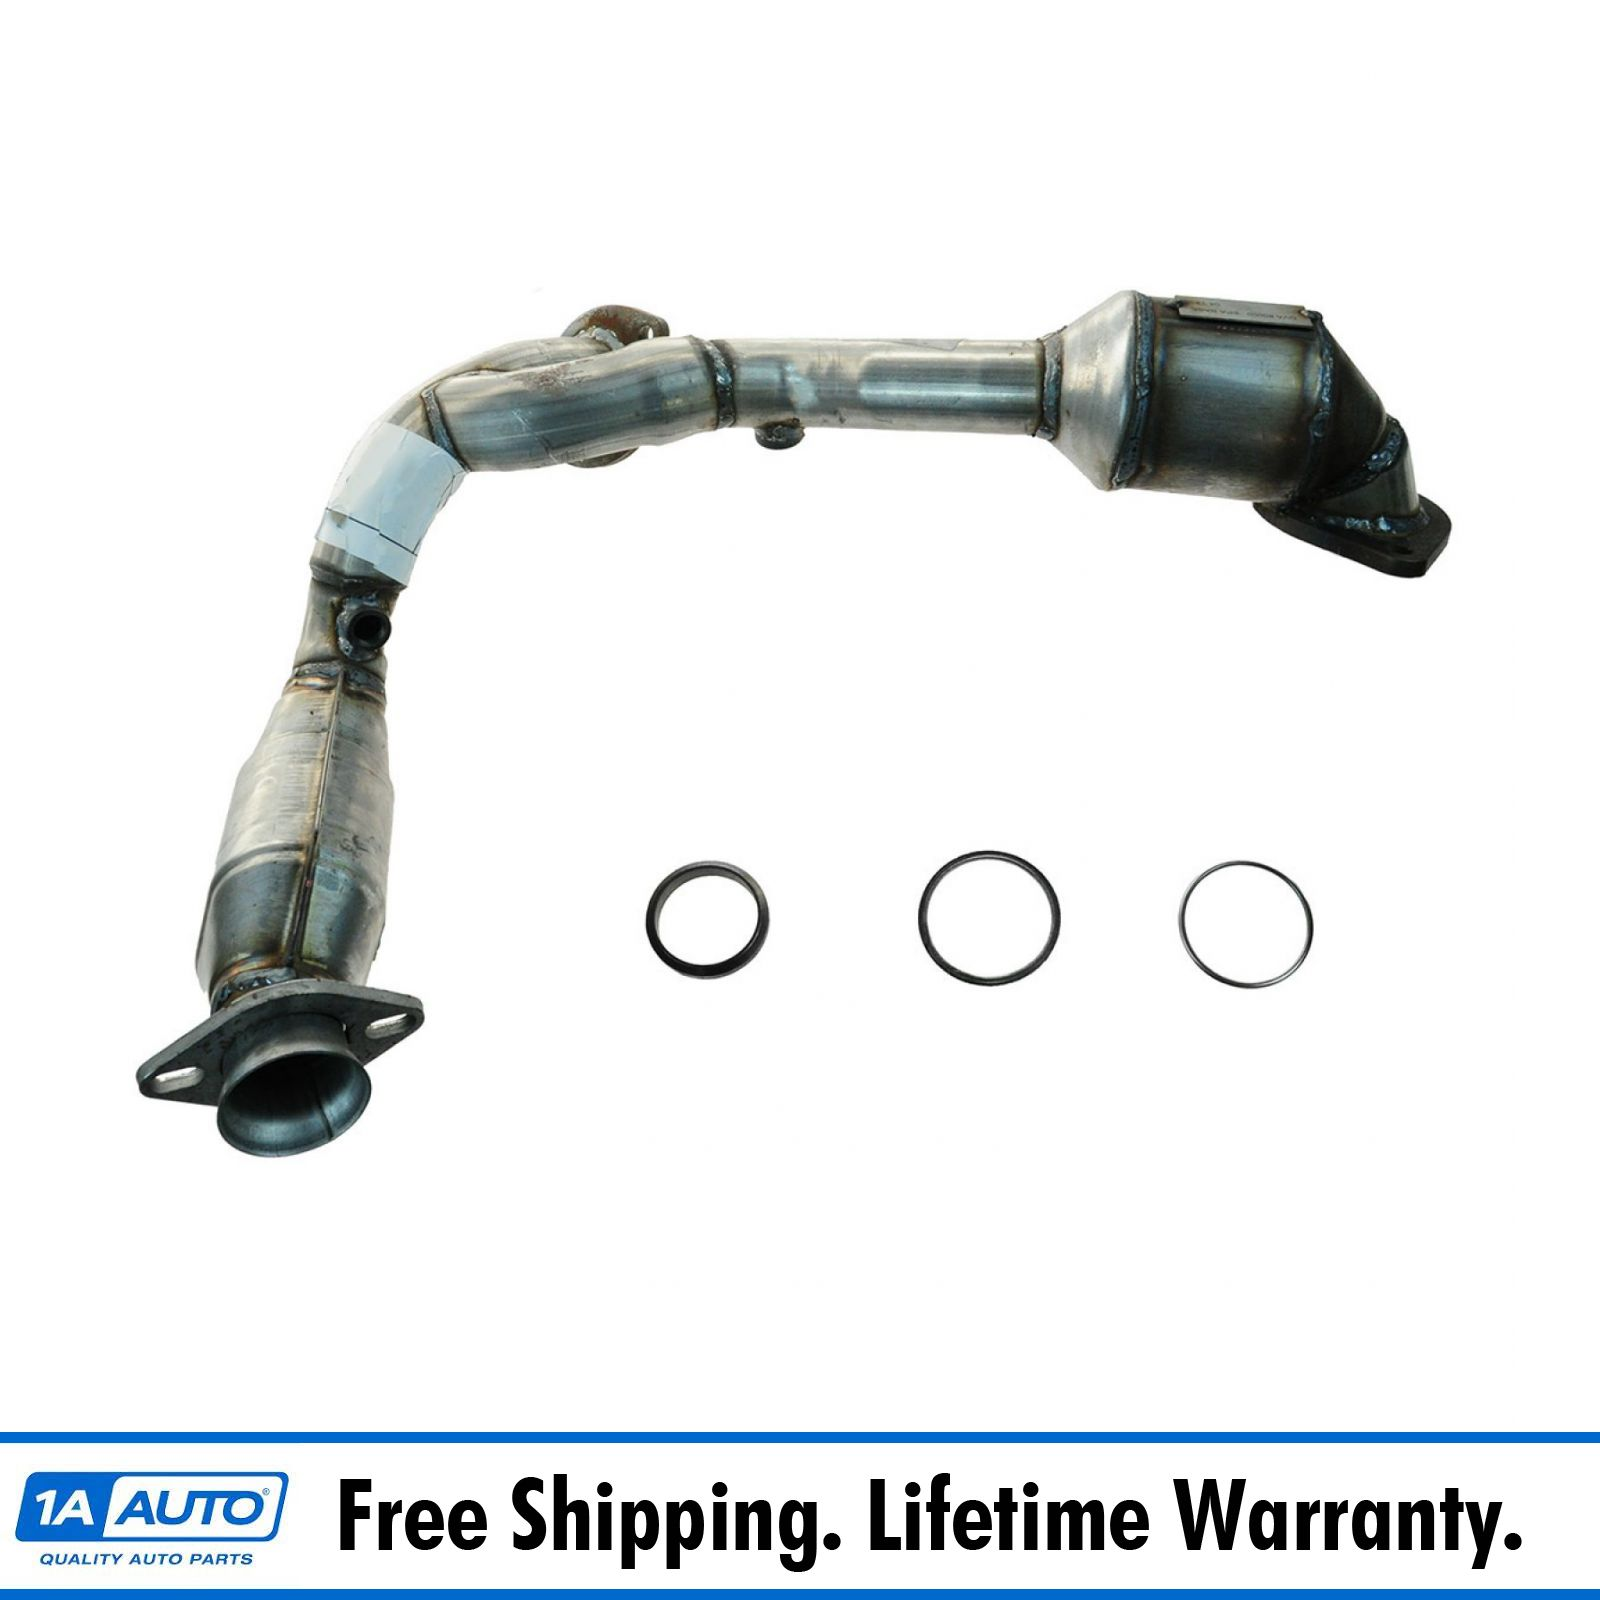 Dual Catalytic Converter Exhaust Y Pipe For Taurus Sable